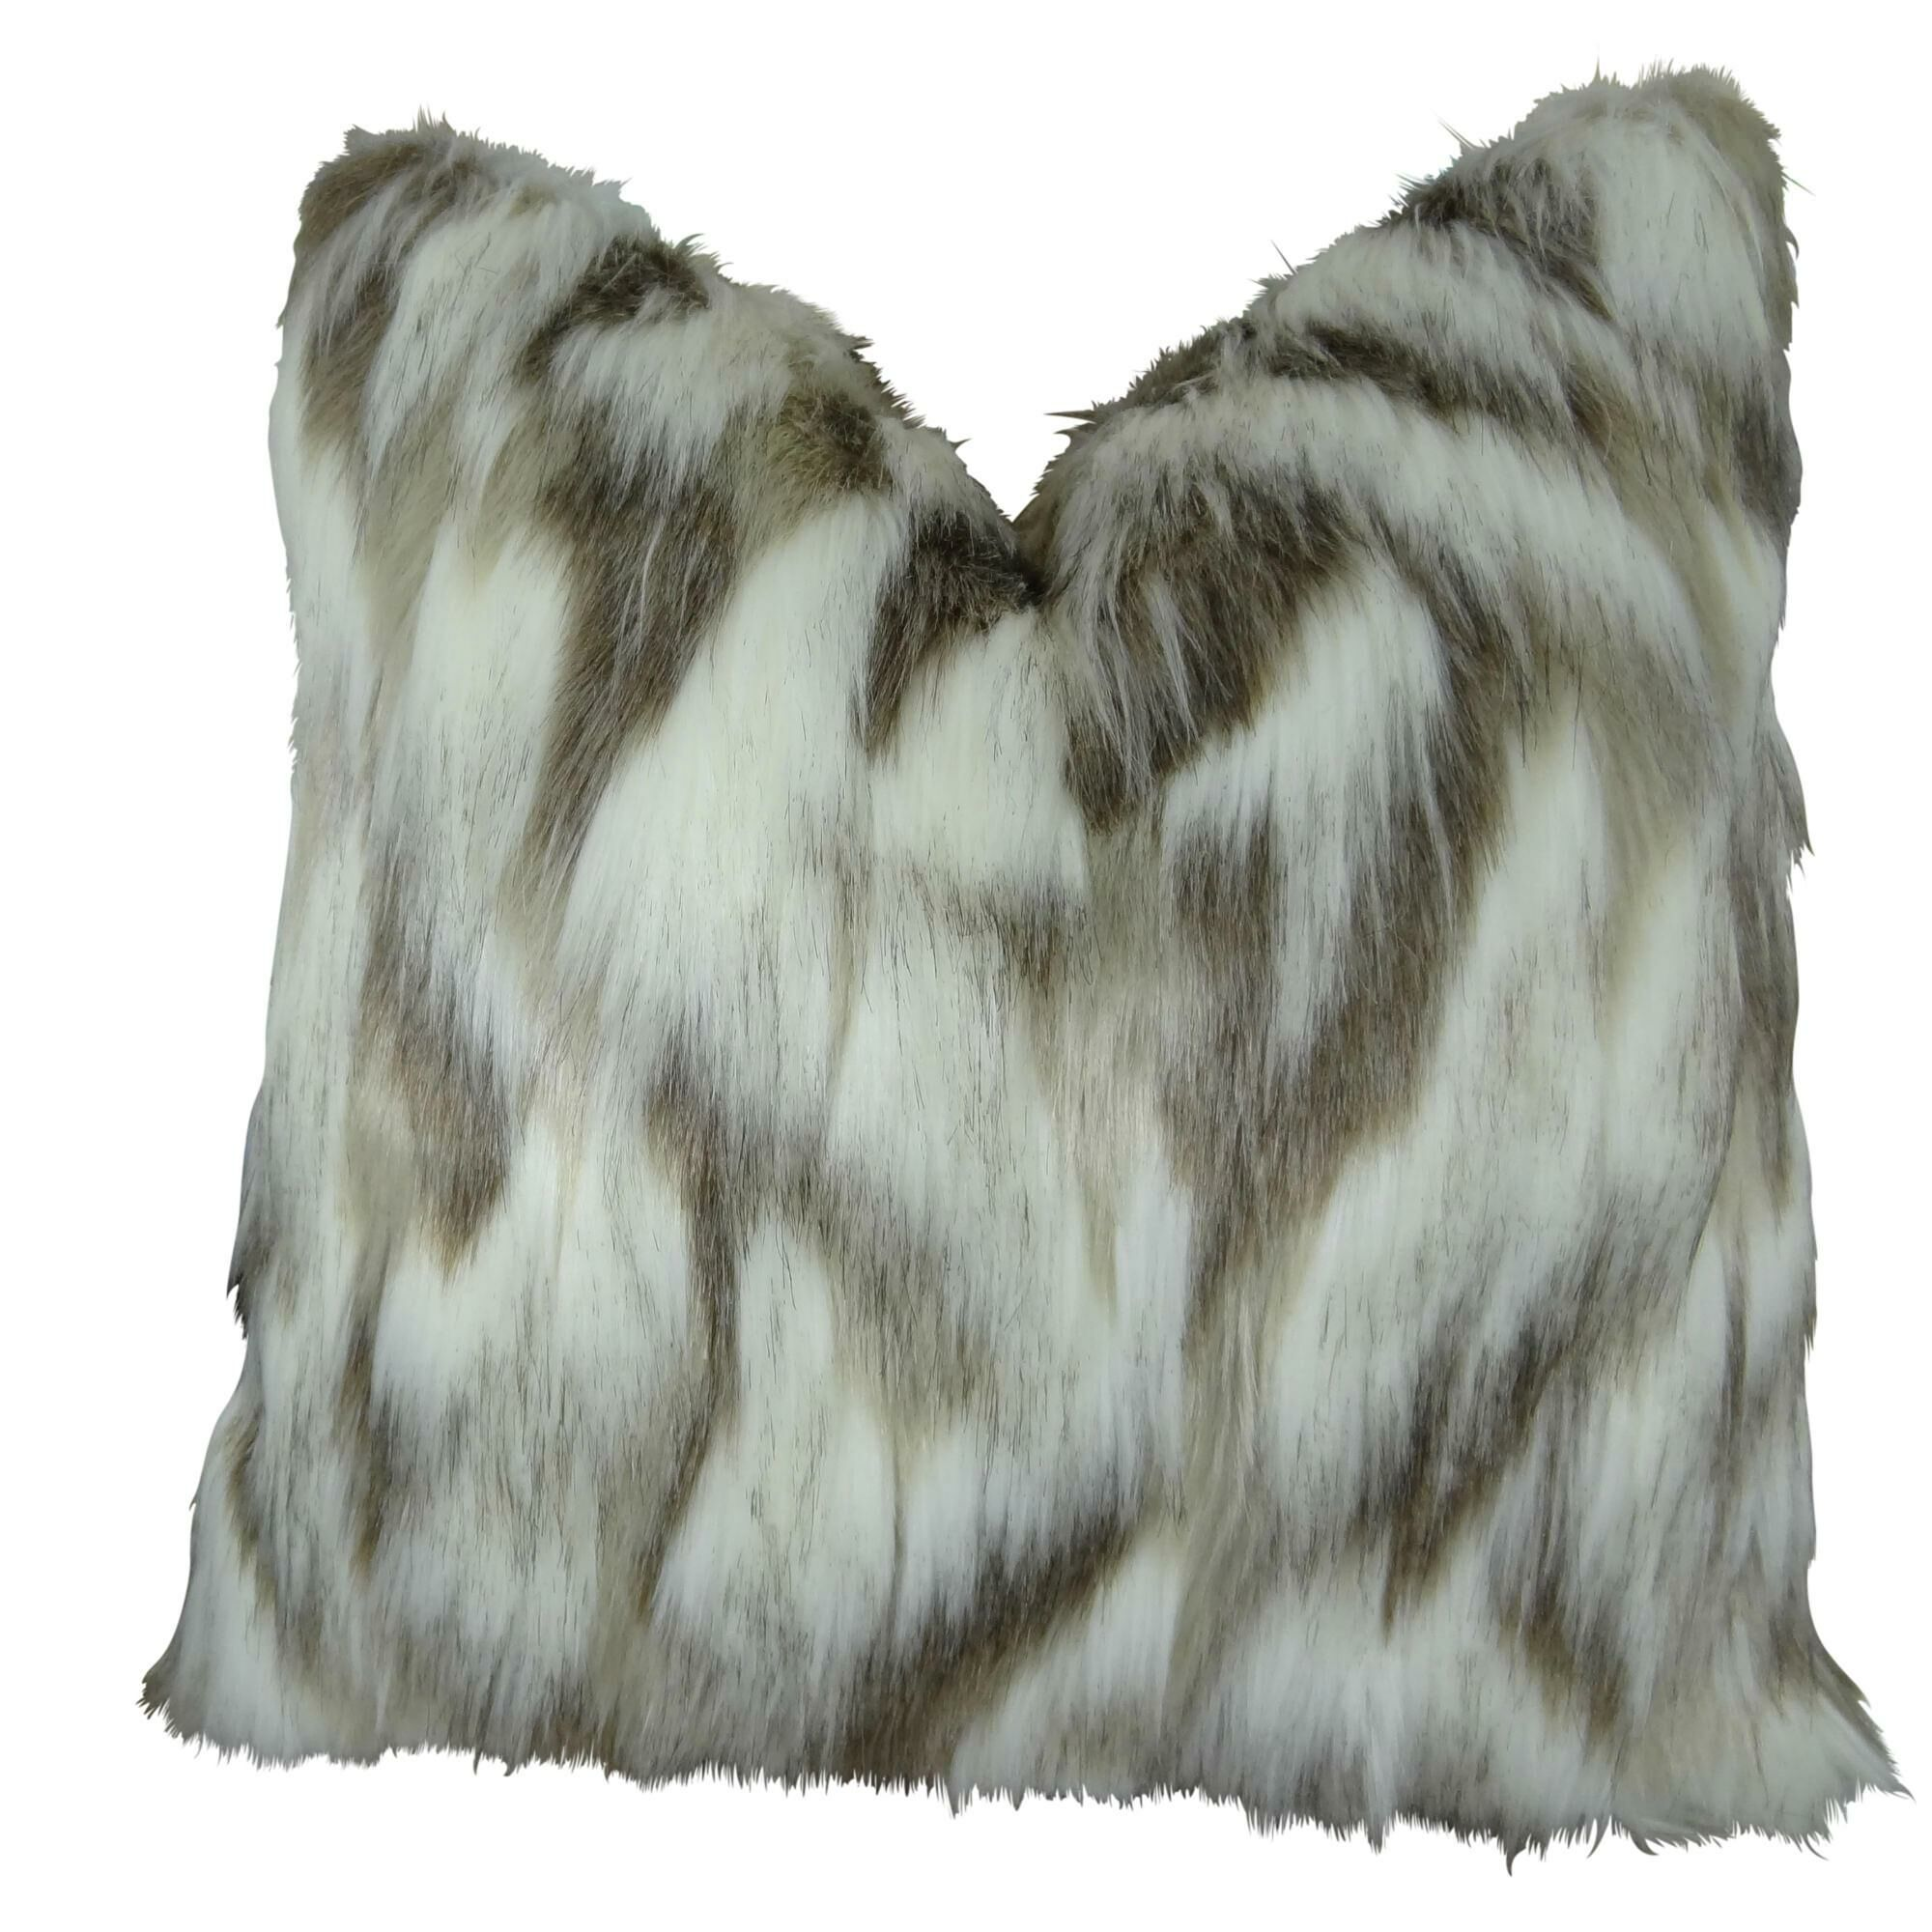 Wafer Luxury Fox Faux Fur Pillow Fill Material: H-allrgnc Polyfill, Size: 16